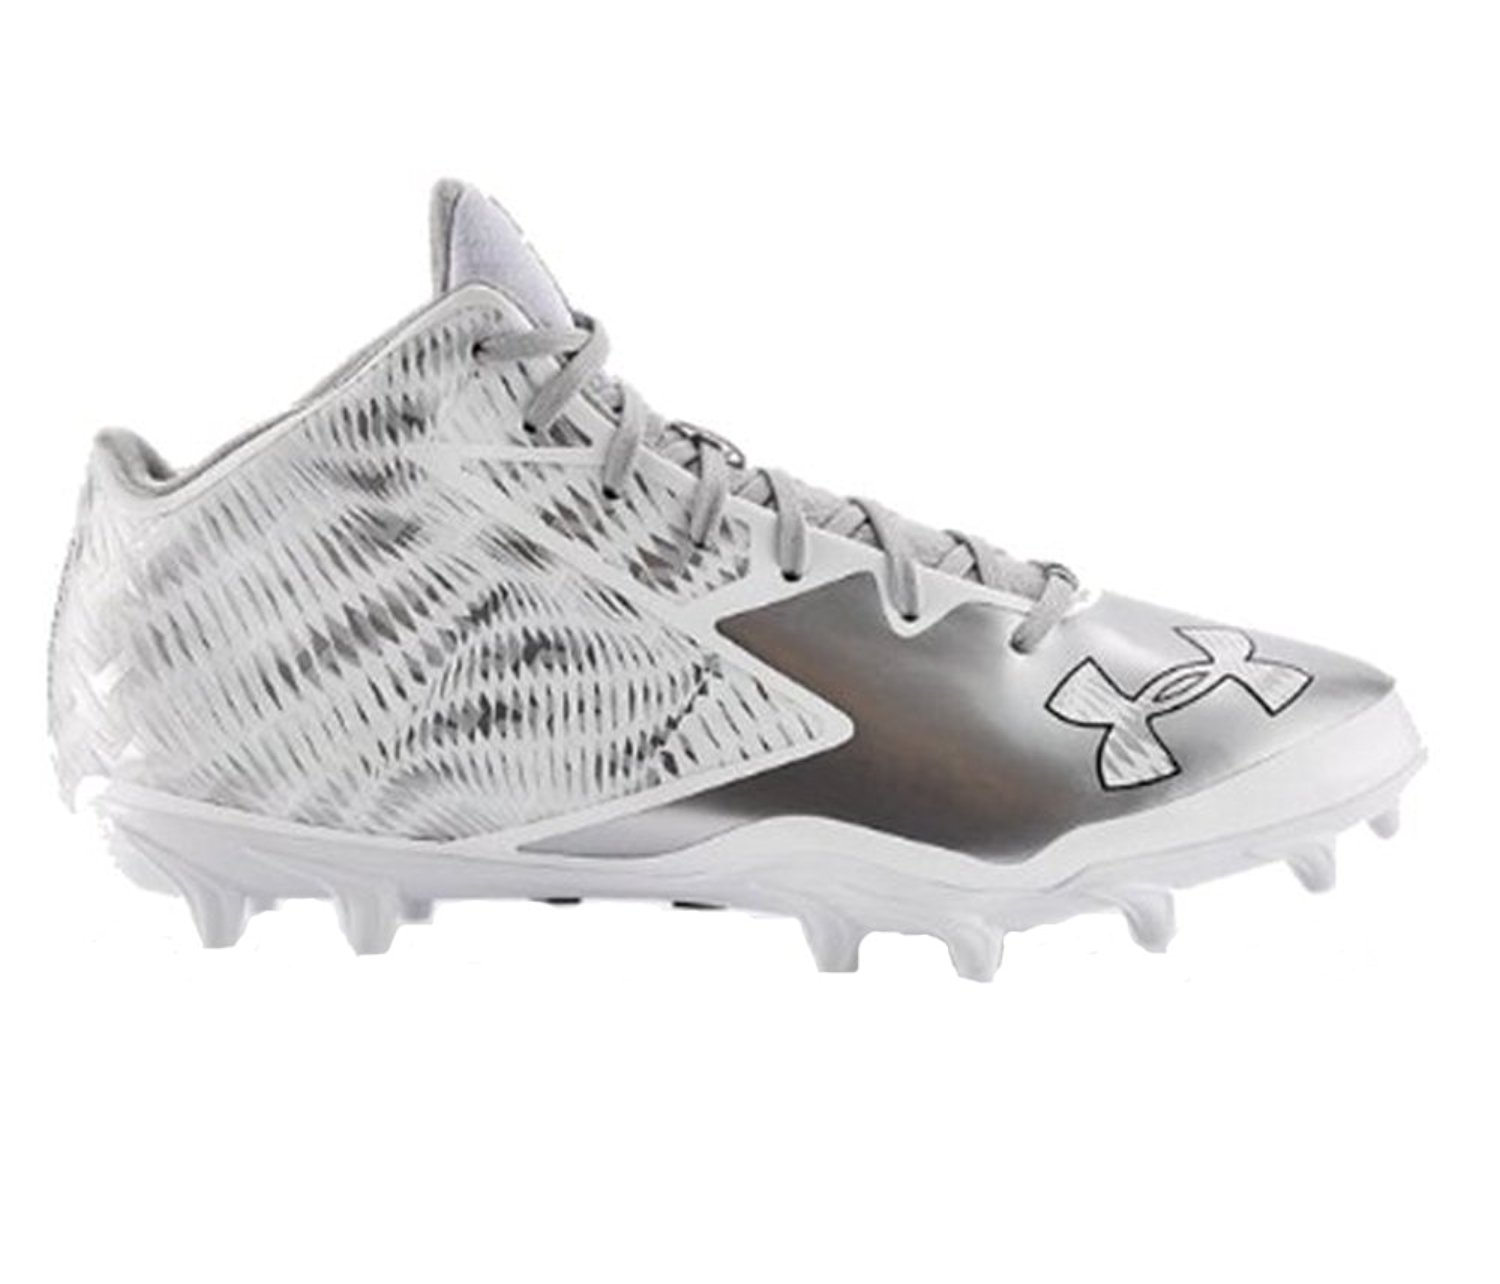 sale retailer 496a7 f9d9e Get Quotations · Under Armour UA Nitro Mid D Men s Football Cleats